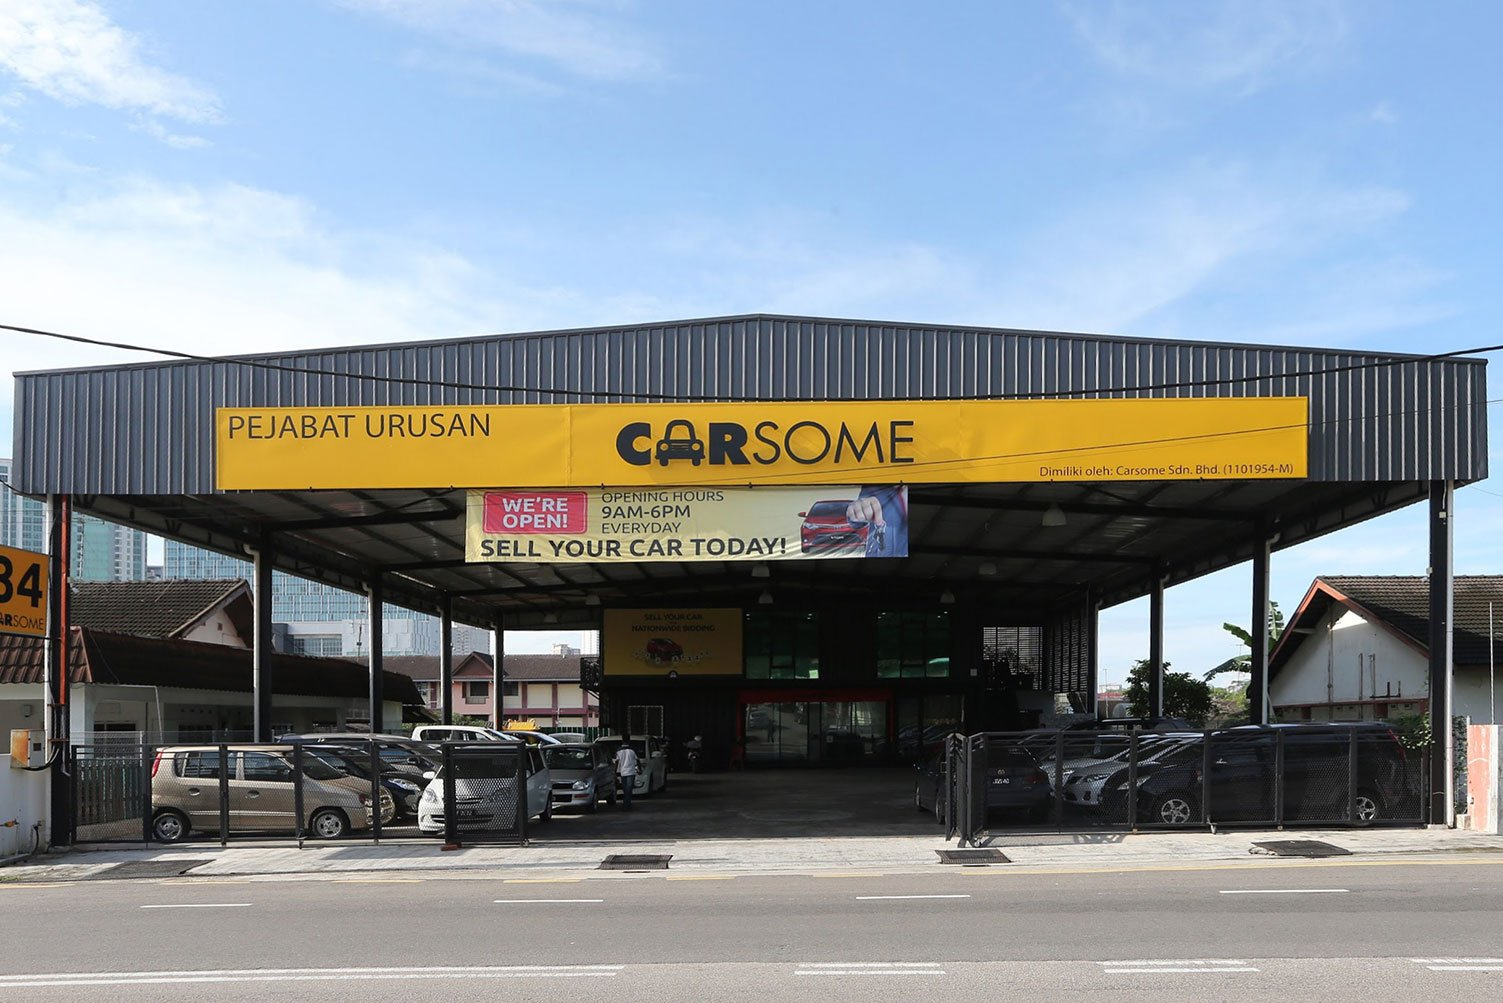 Carsome, Southeast Asia's largest used car trading platform, expands nationwide in Malaysia